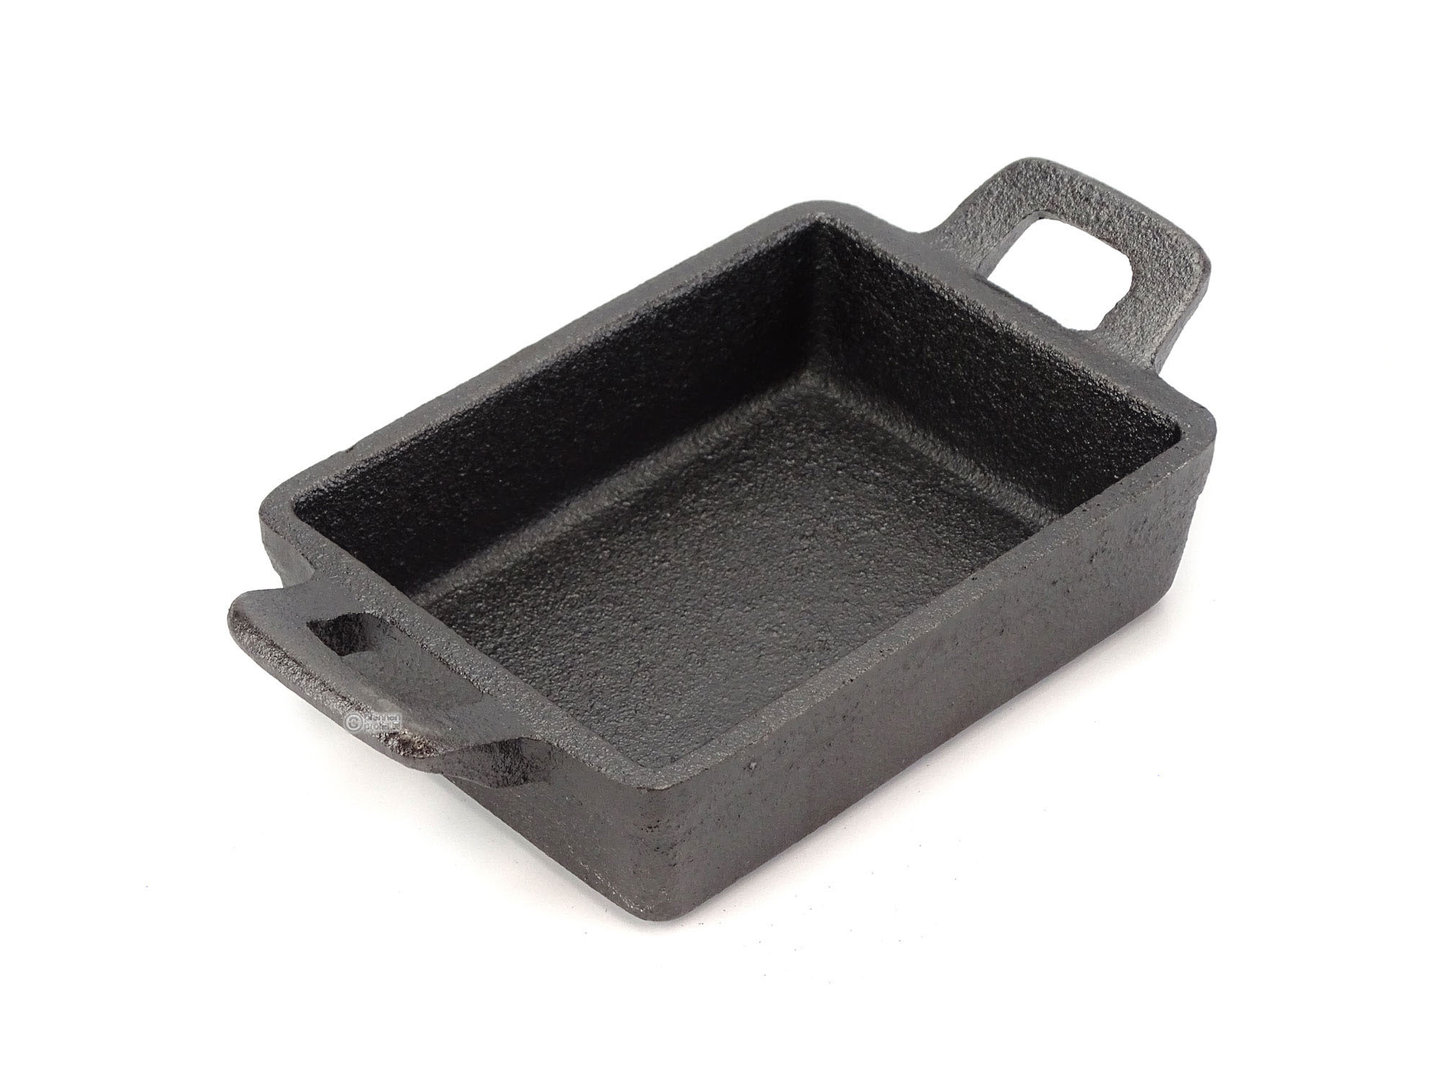 RONNEBY BRUK mini cast iron serving dish RONDO 12x9 cm RECTANGULAR, pre-seasoned